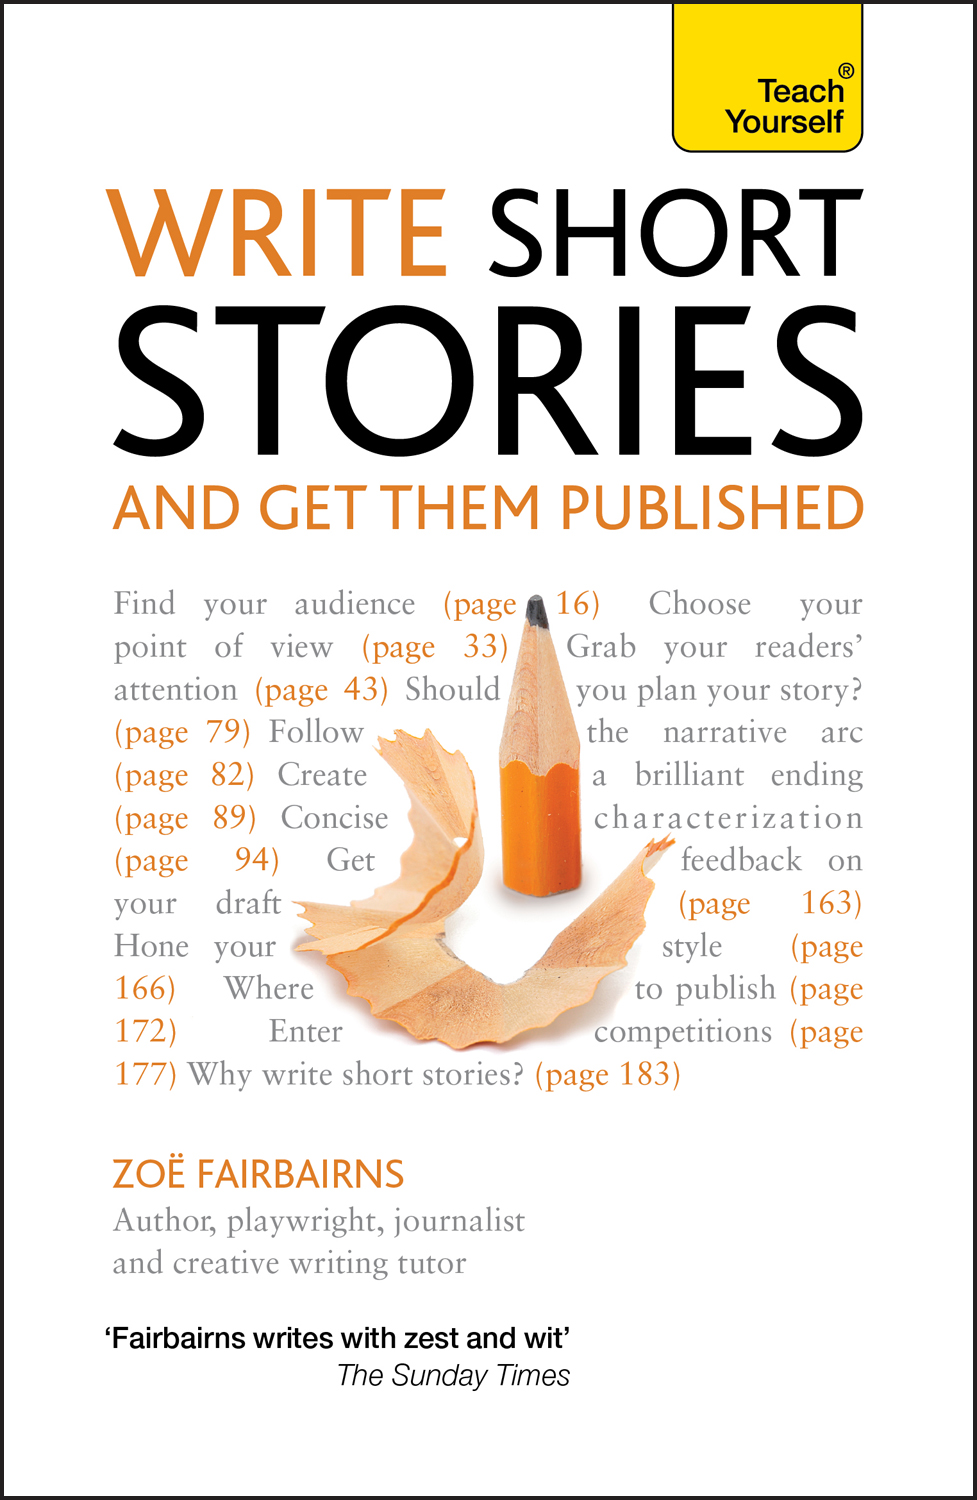 publishing essays and short stories A renowned modern library of fiction, poetry, essays, and visual art by celebrated and emerging artists, provided free to readers.